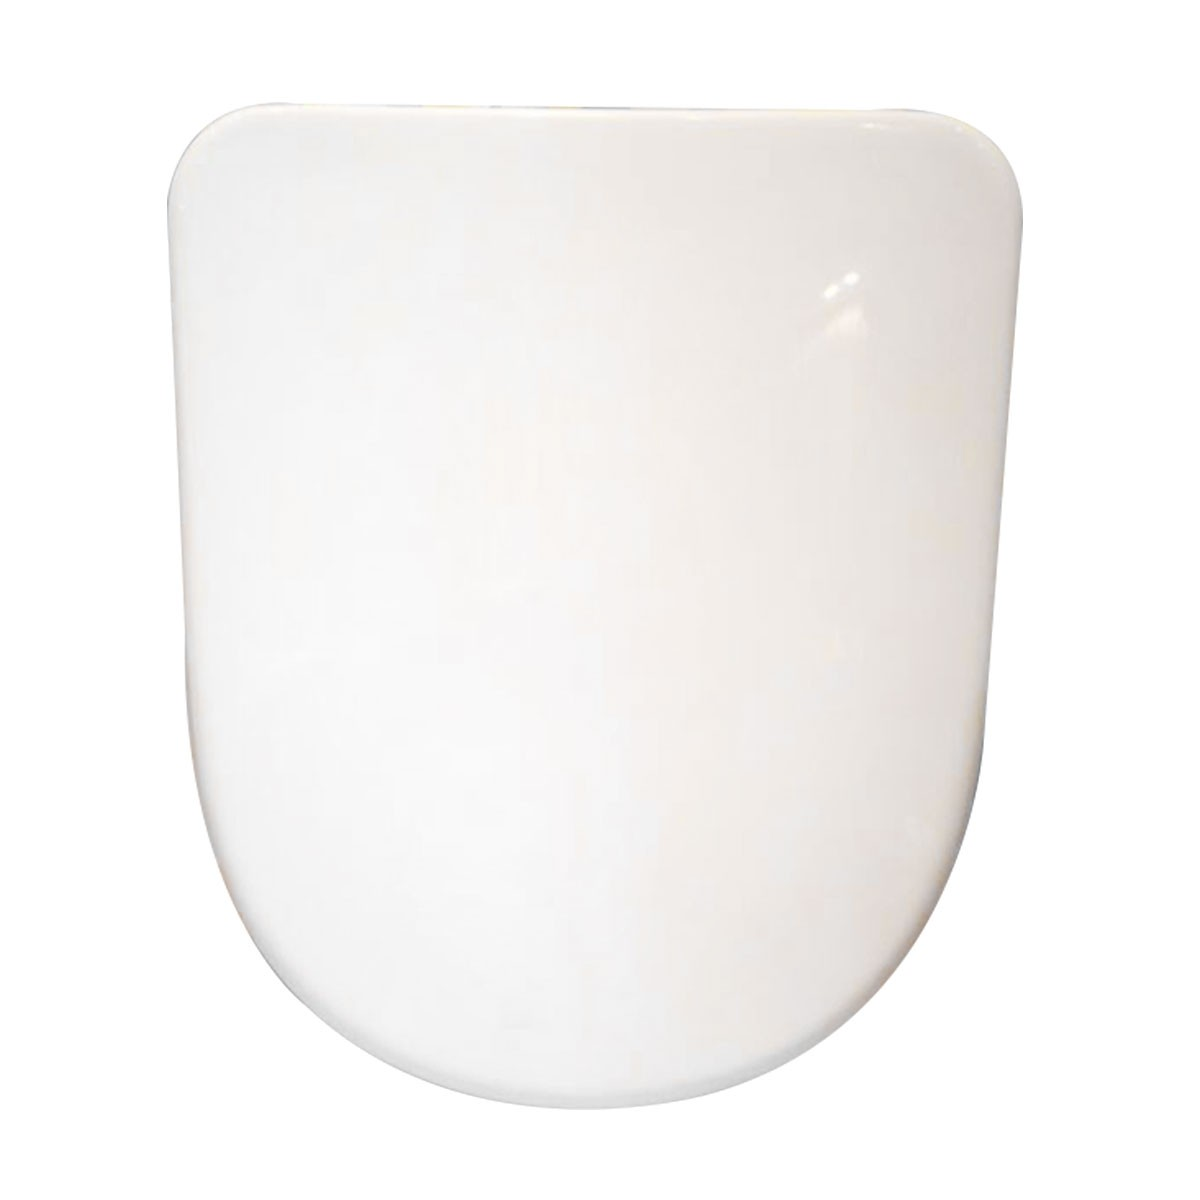 PP White Round-front Soft Close Toilet Seat with Cover (DK-CL-040)